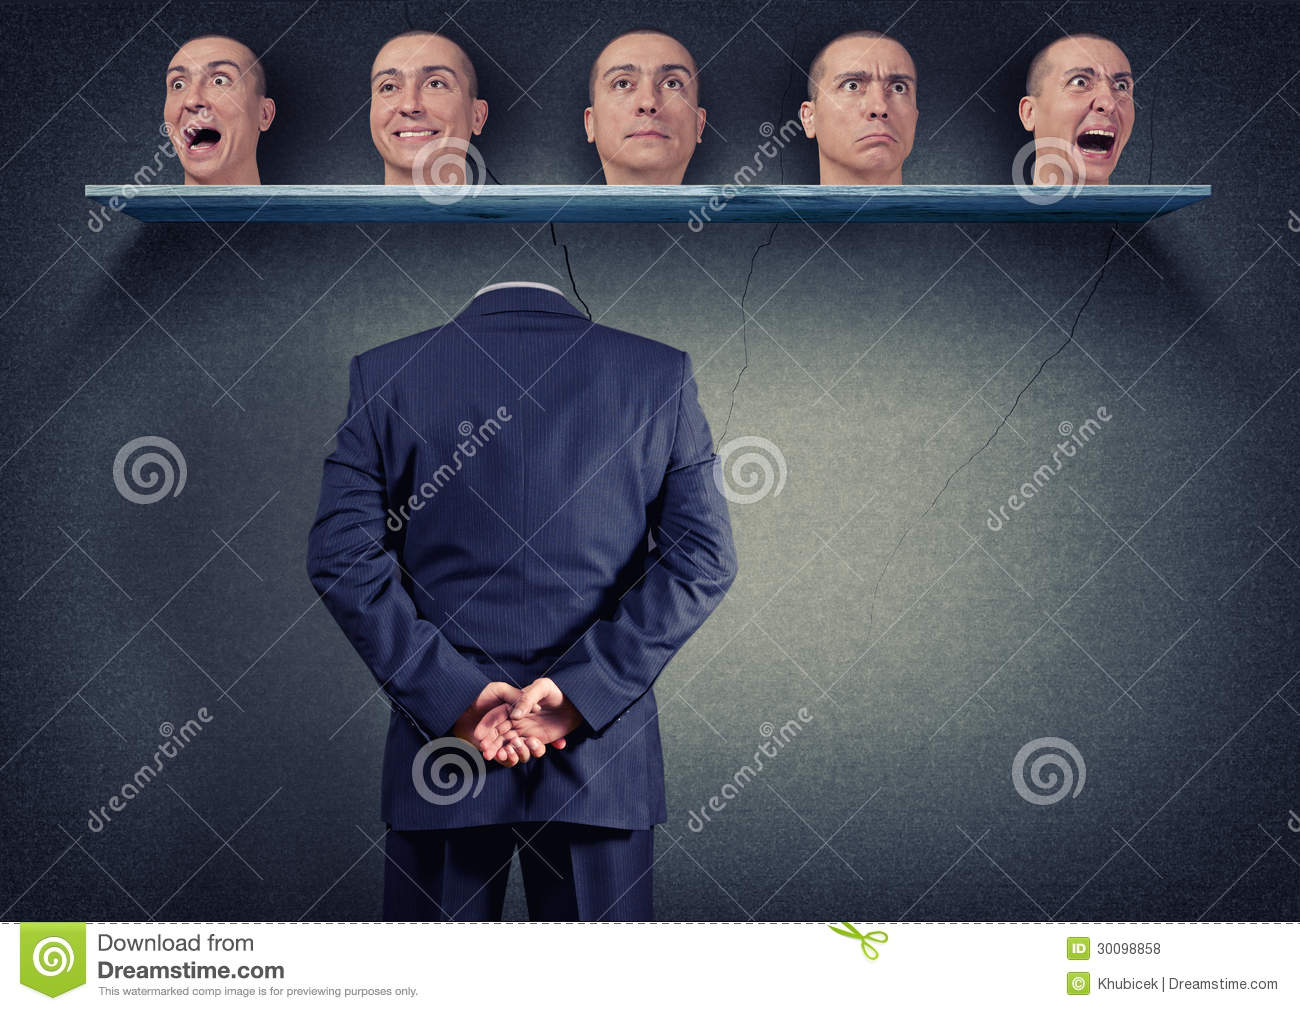 Head selection stock photo. Image of transformation, suit - 30098858